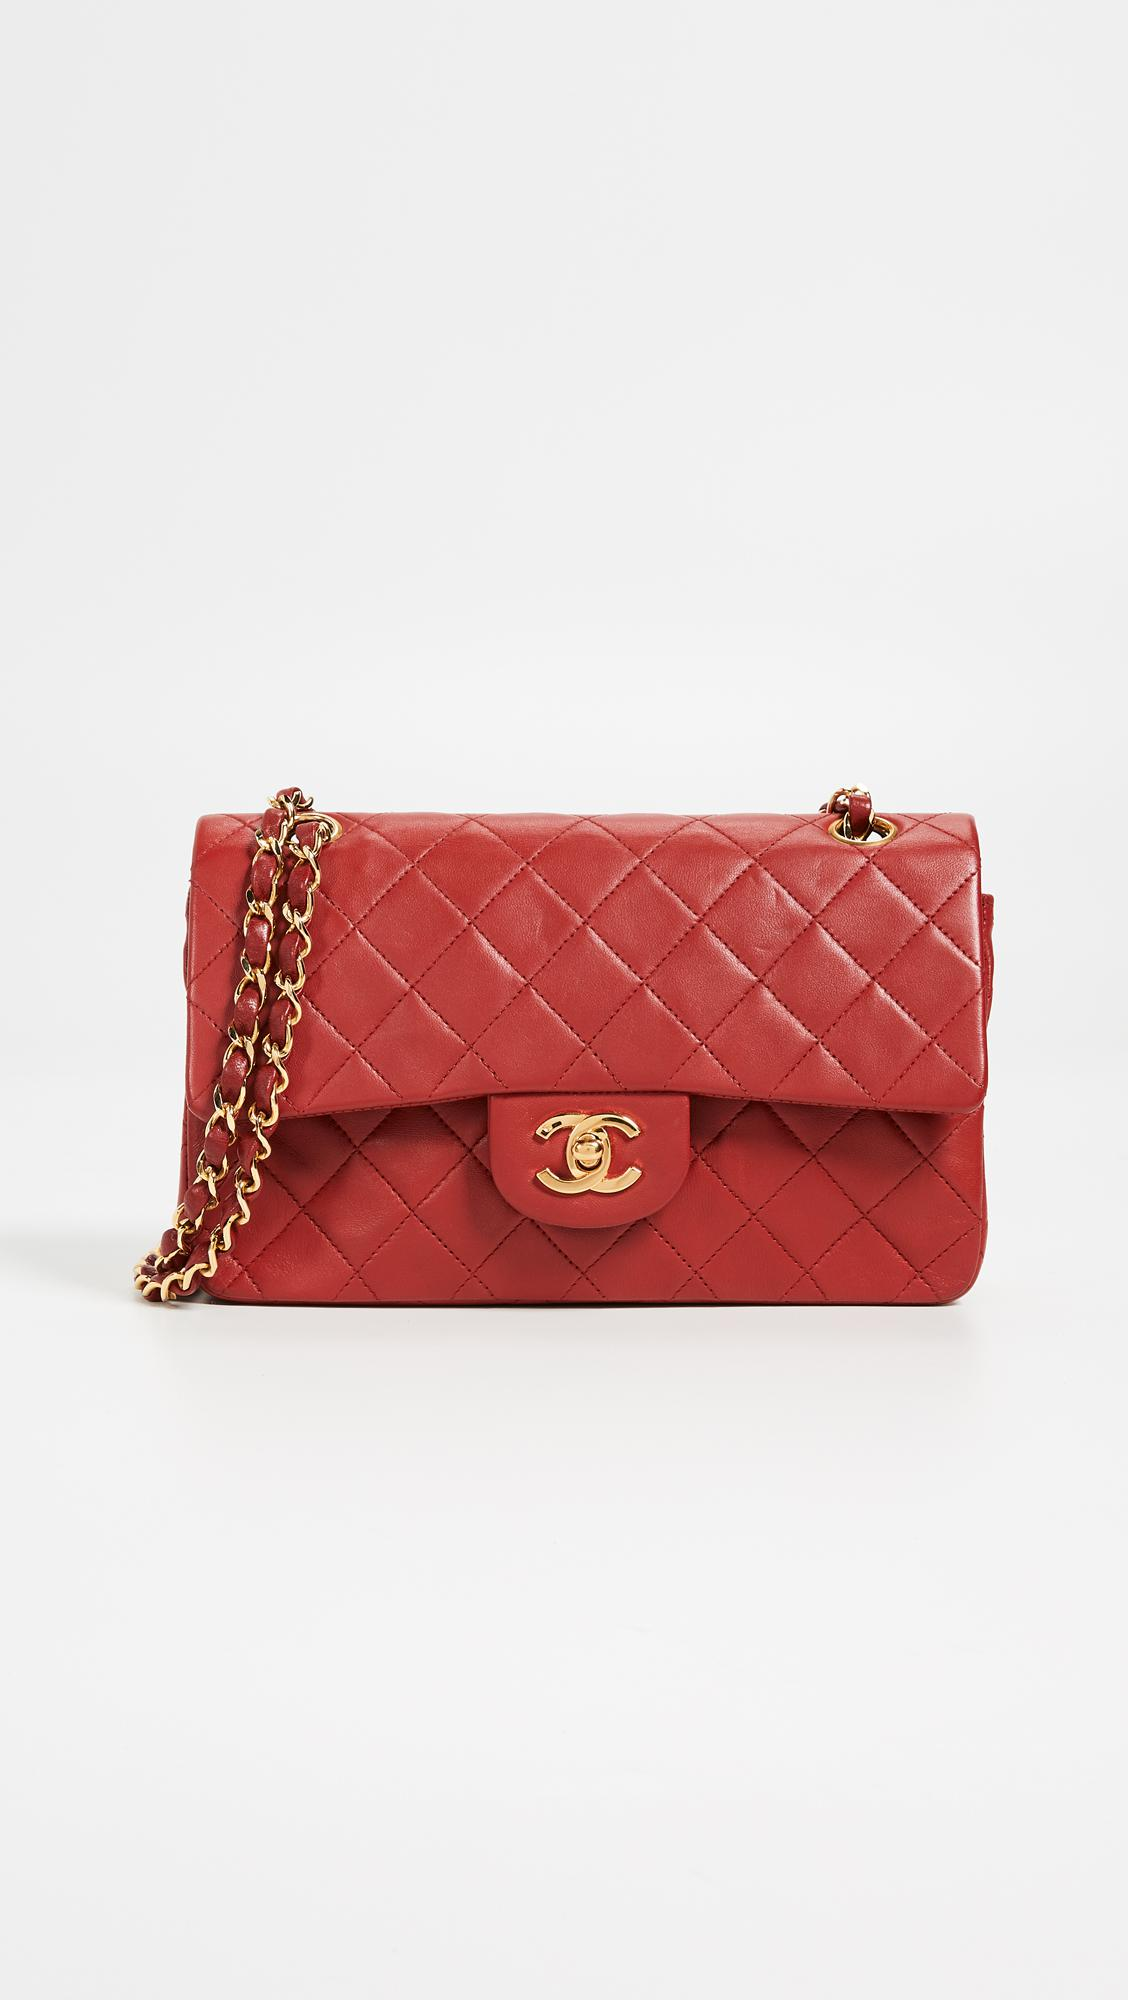 19b5f8a0f9c2 What Goes Around Comes Around Chanel Red Lambskin Classic Flap Bag ...